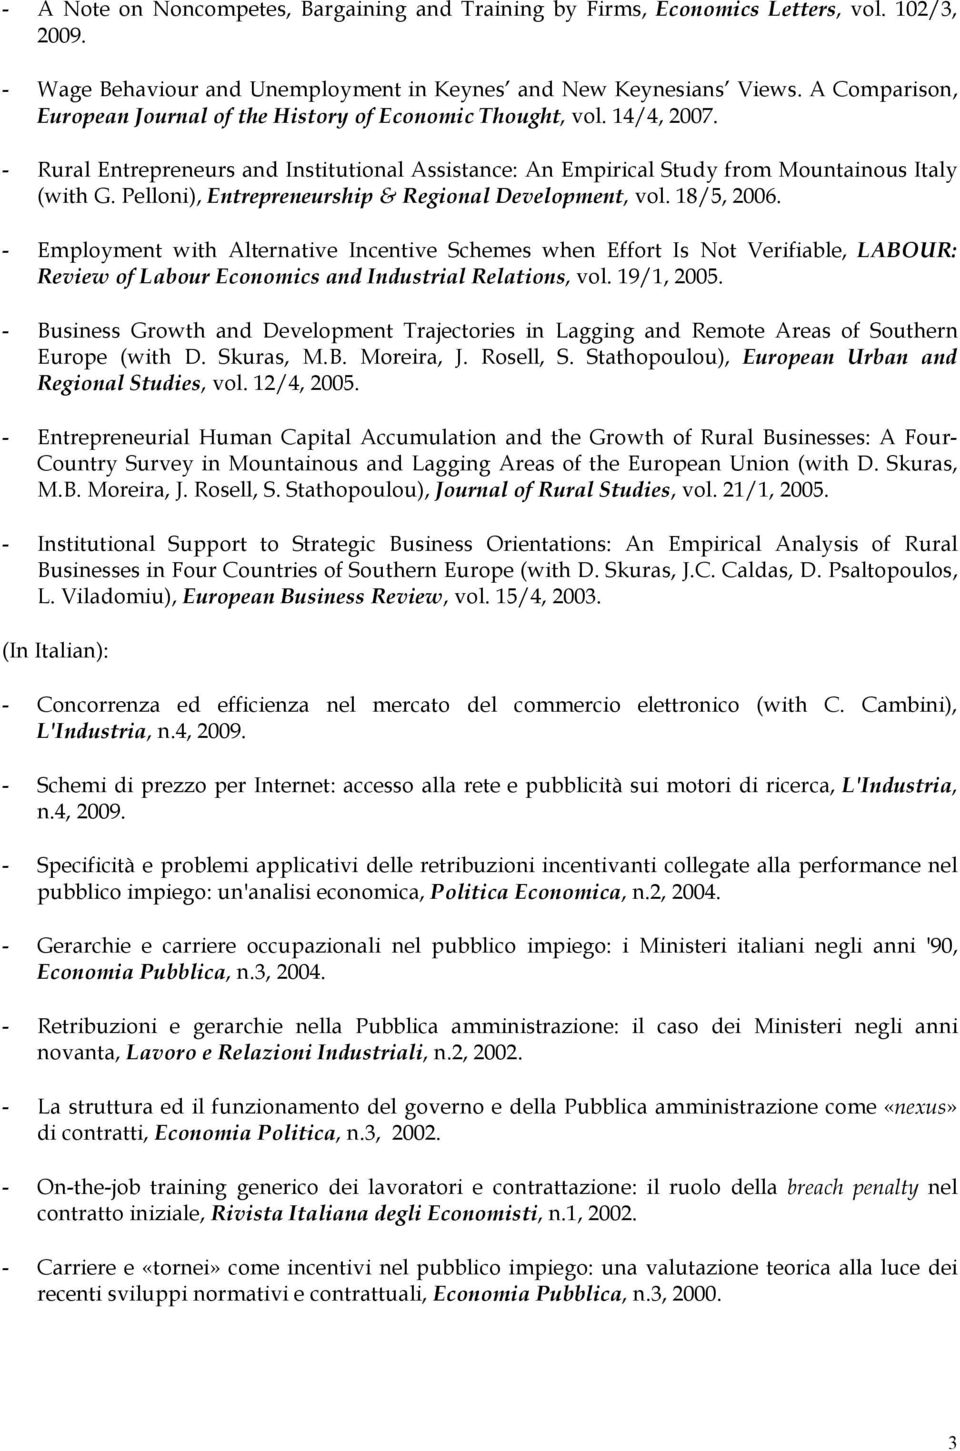 Pelloni), Entrepreneurship & Regional Development, vol. 18/5, 2006.